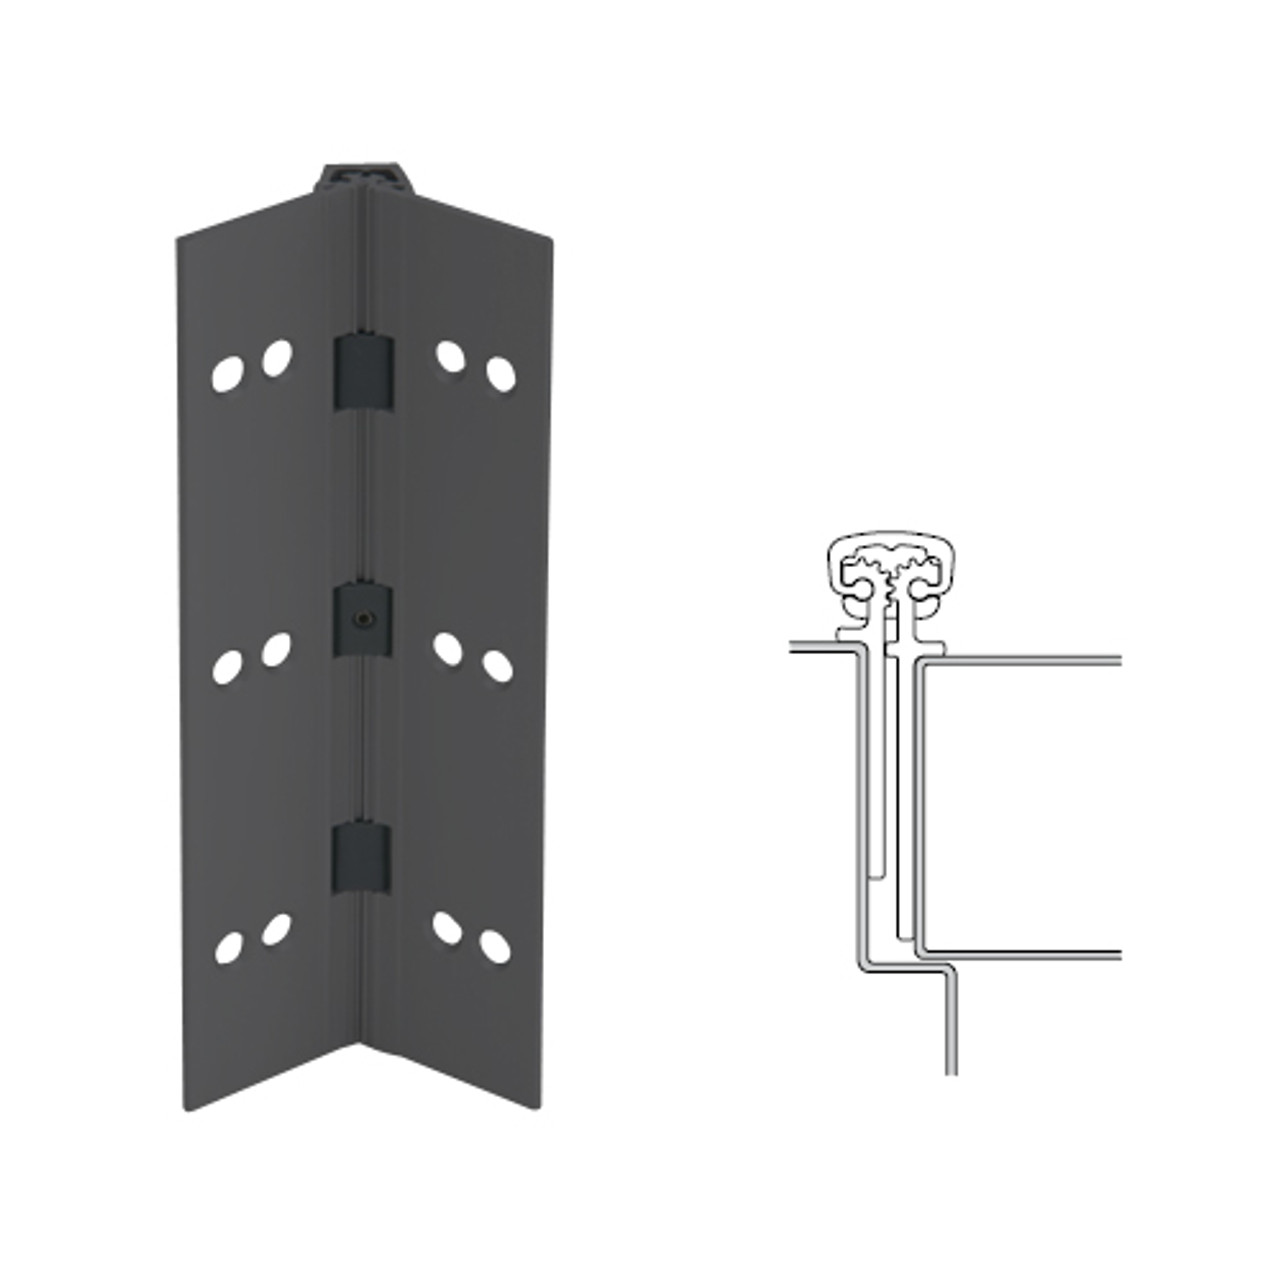 026XY-315AN-95-HT IVES Full Mortise Continuous Geared Hinges with Hospital Tip in Anodized Black